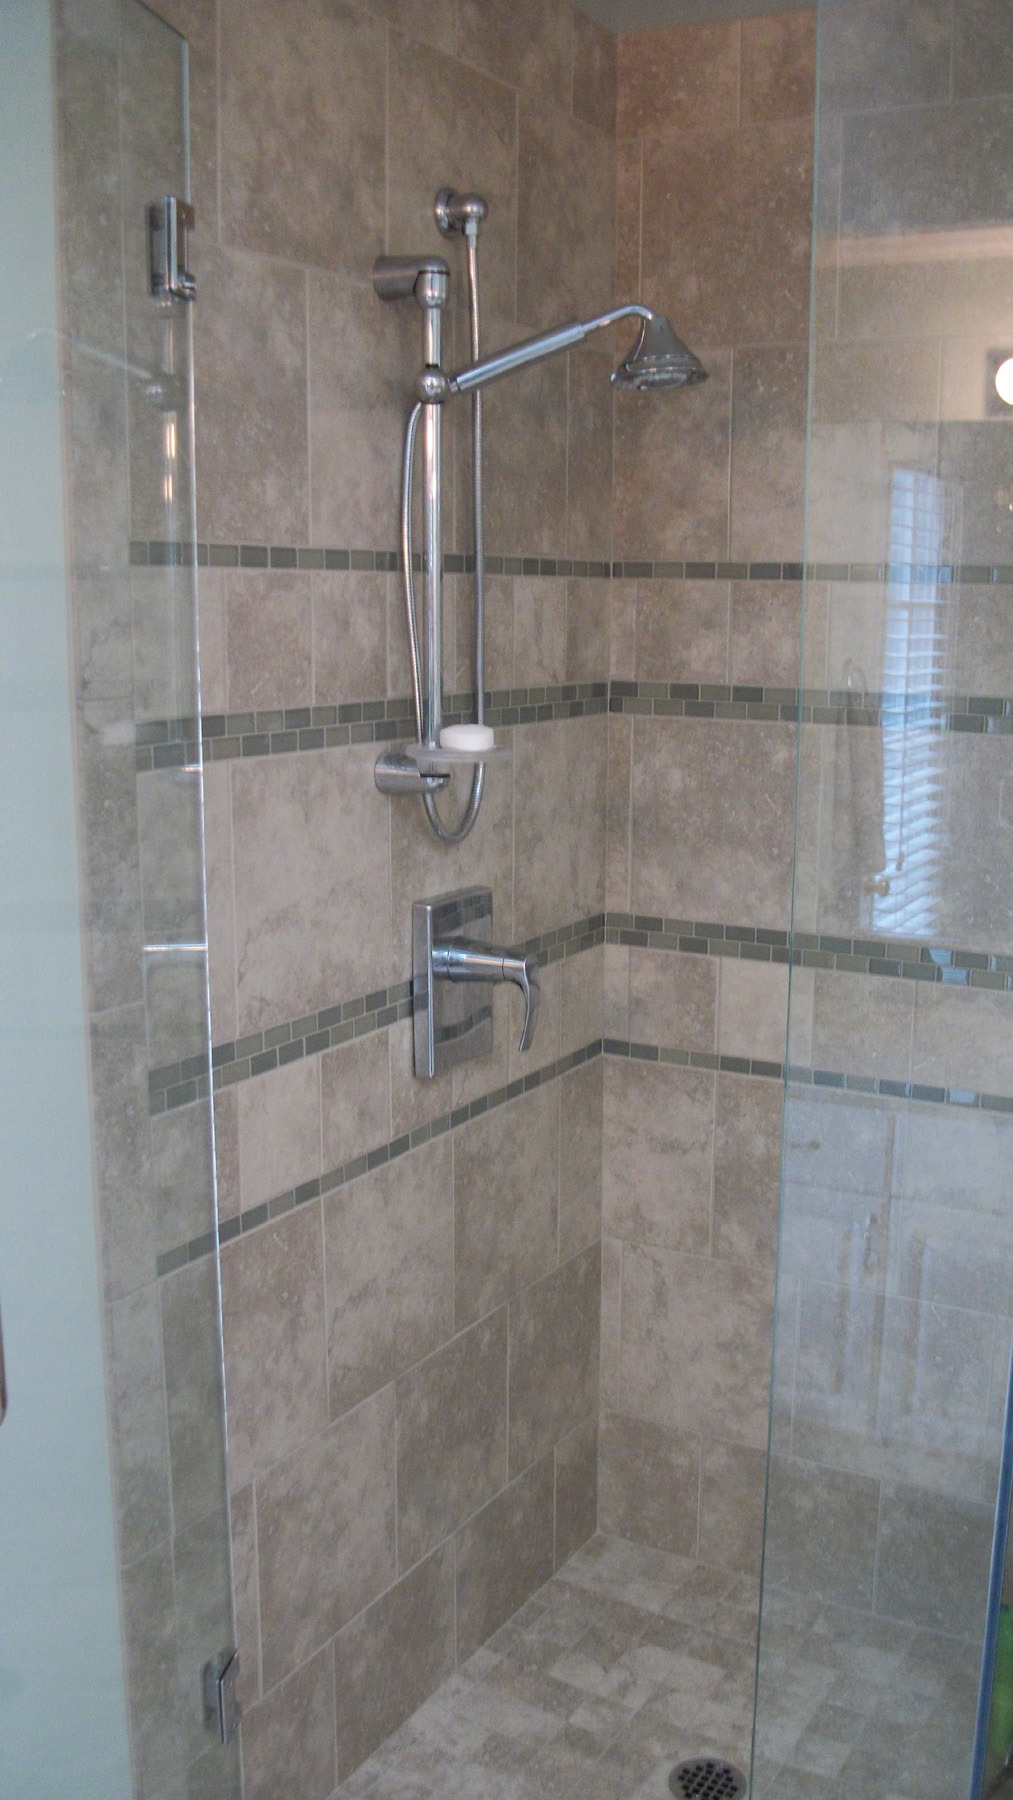 Bath remodel featuring Schon free standing tub  Rose